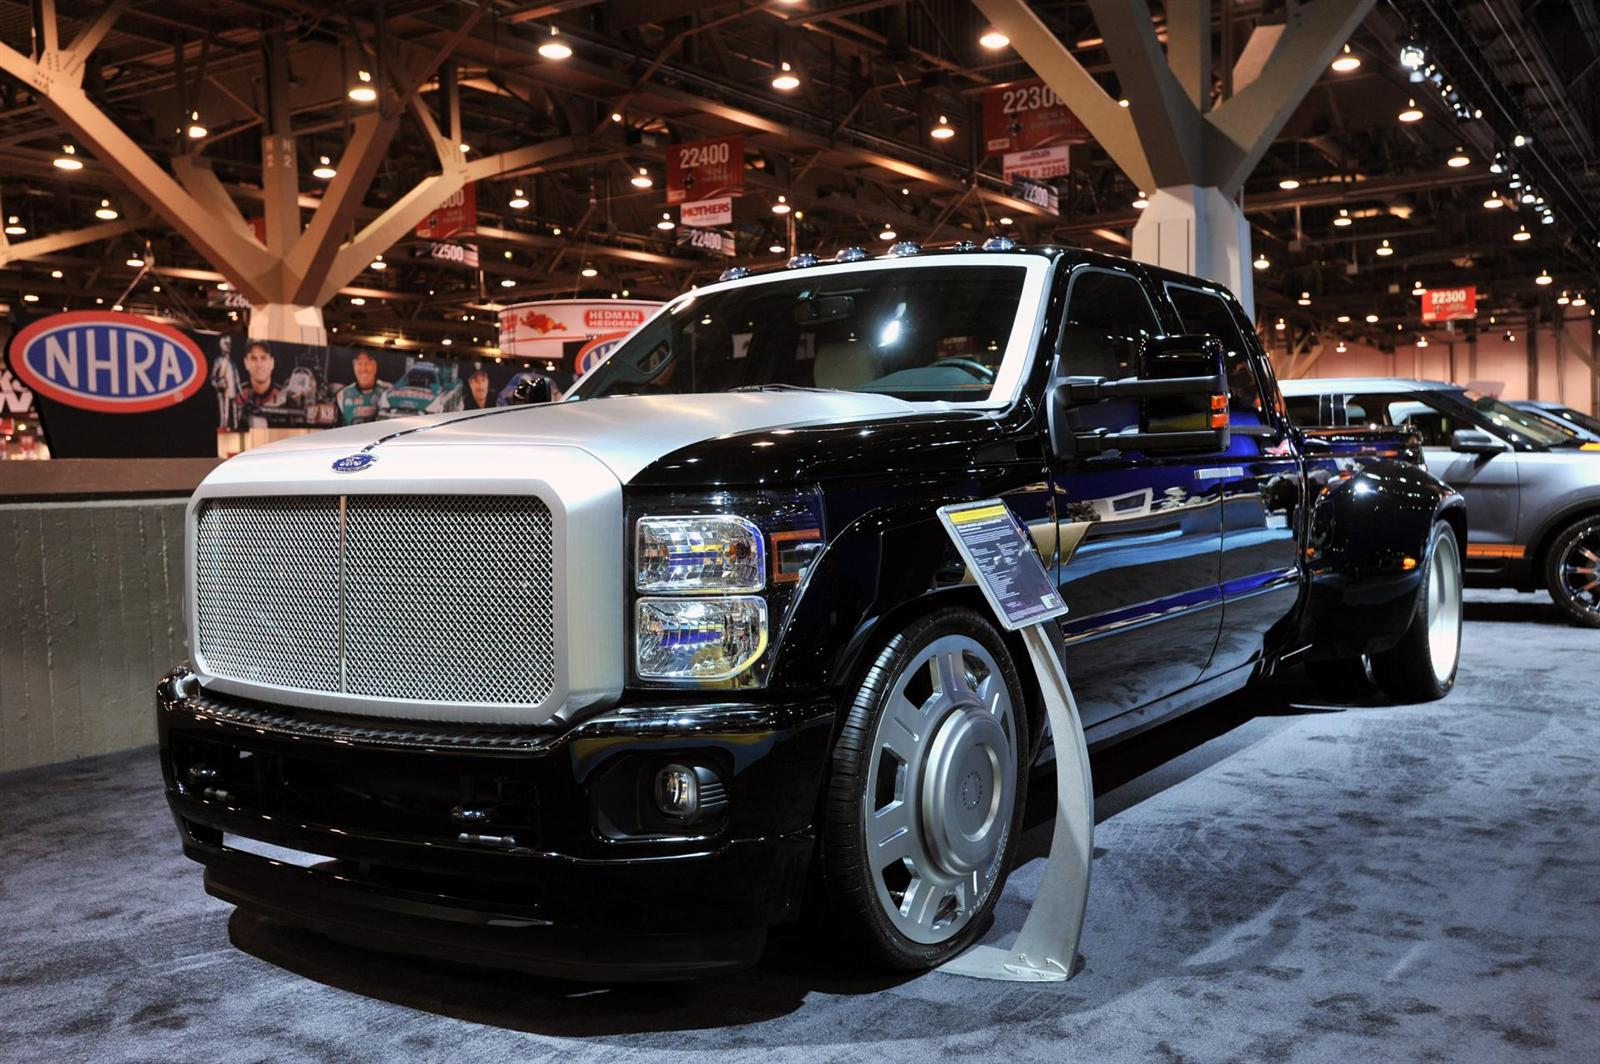 2011 Ford F-350 Super Duty by Hulst Customs Images. Photo Ford-F-350-SD_Hulst-Customs-02-1600.jpg